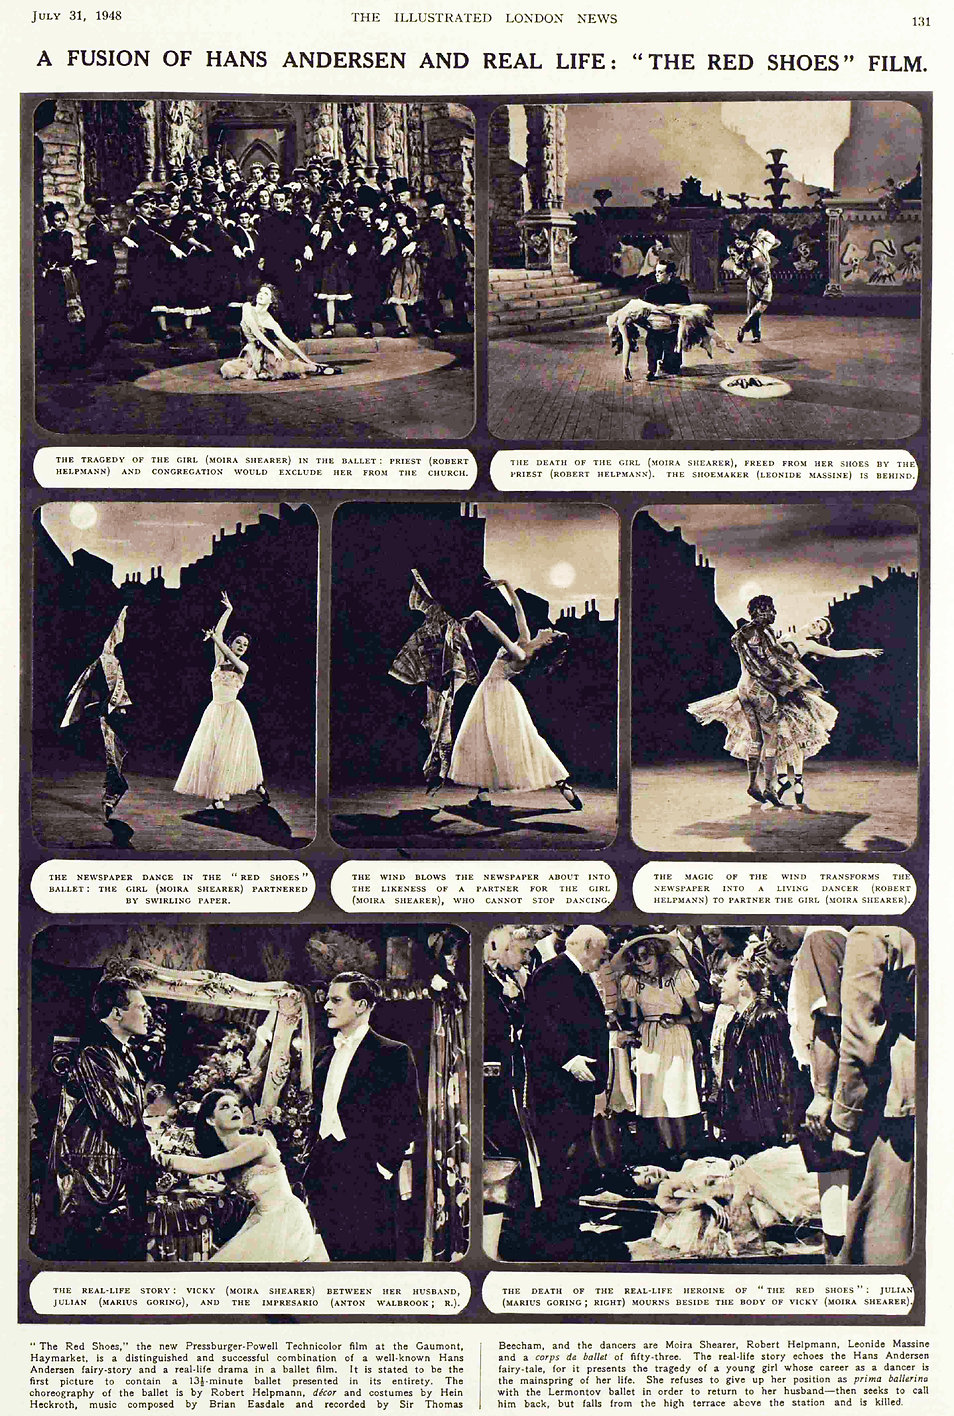 The Red Shoes article with photos in the Illustrated London News 31 July 1948